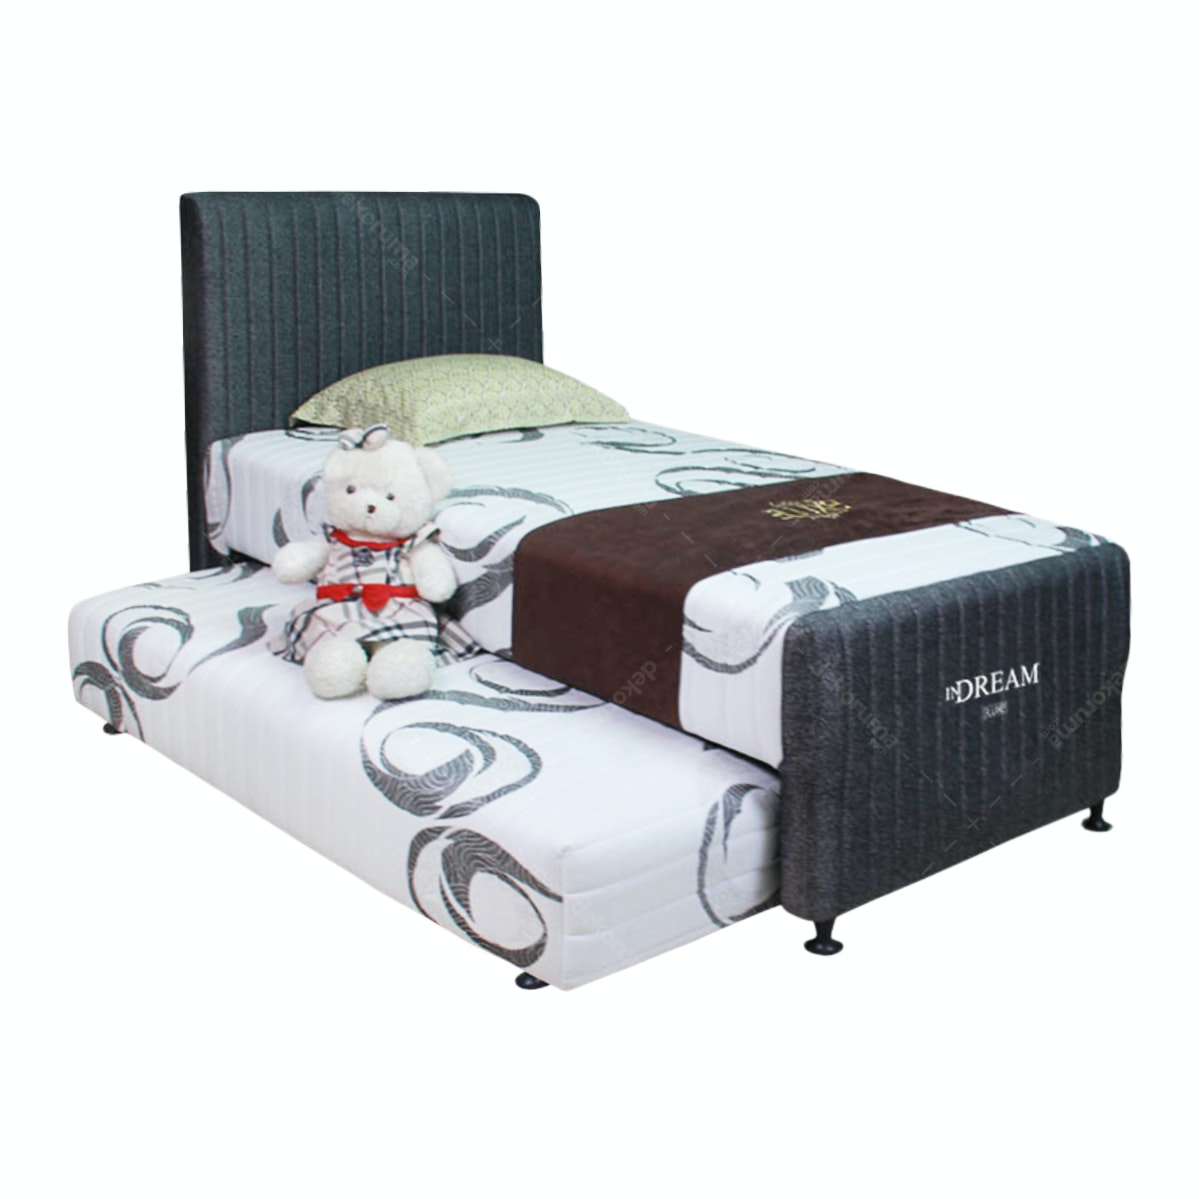 The Luxe Fullset Kasur 2in1 Dream Uk 120x200